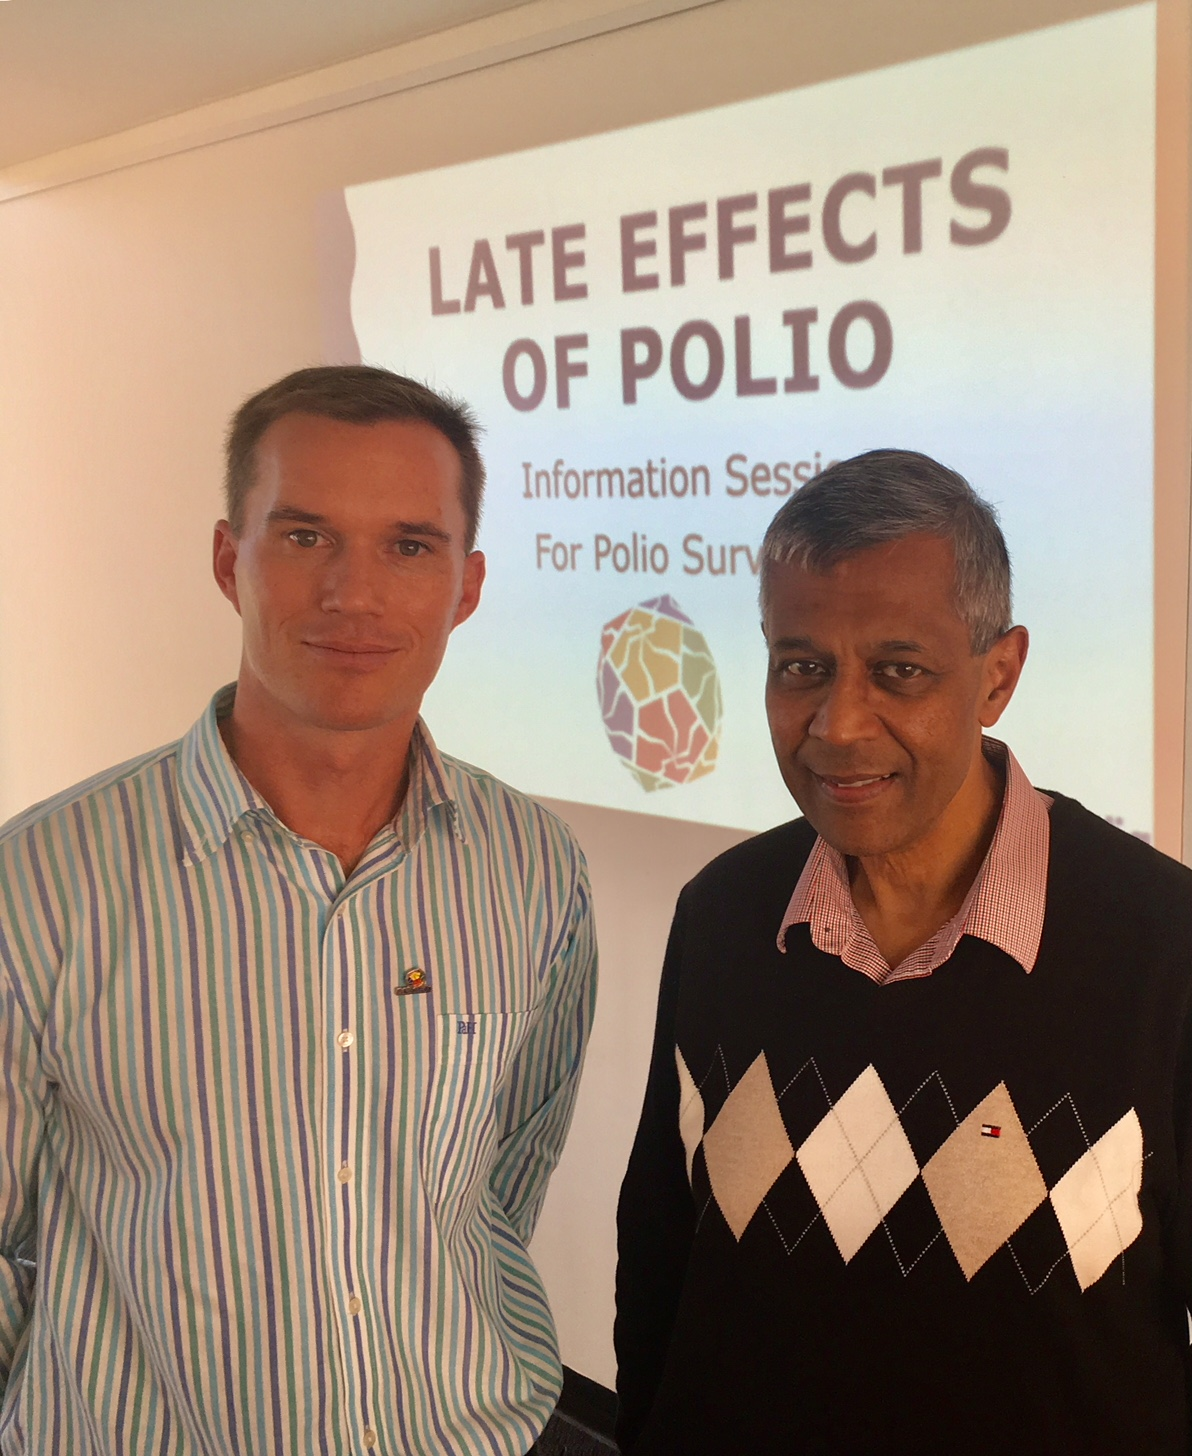 Image of Paul Cavendish & Dr Quadros at a Polio survivor information session